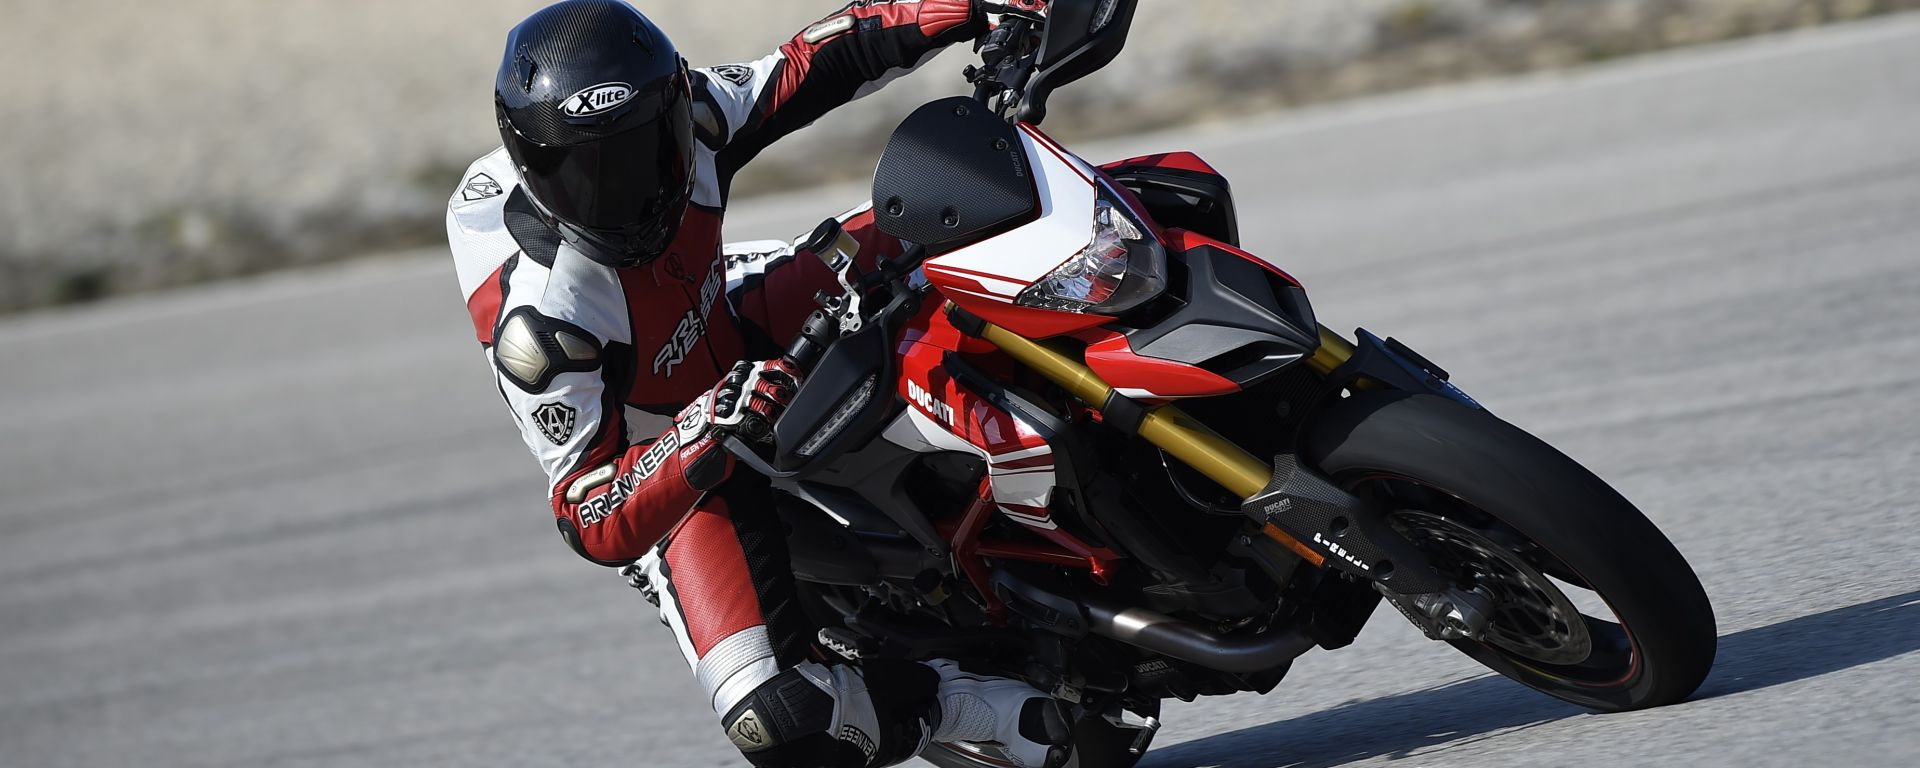 Ducati Hypermotard 939 e 939 SP: il video